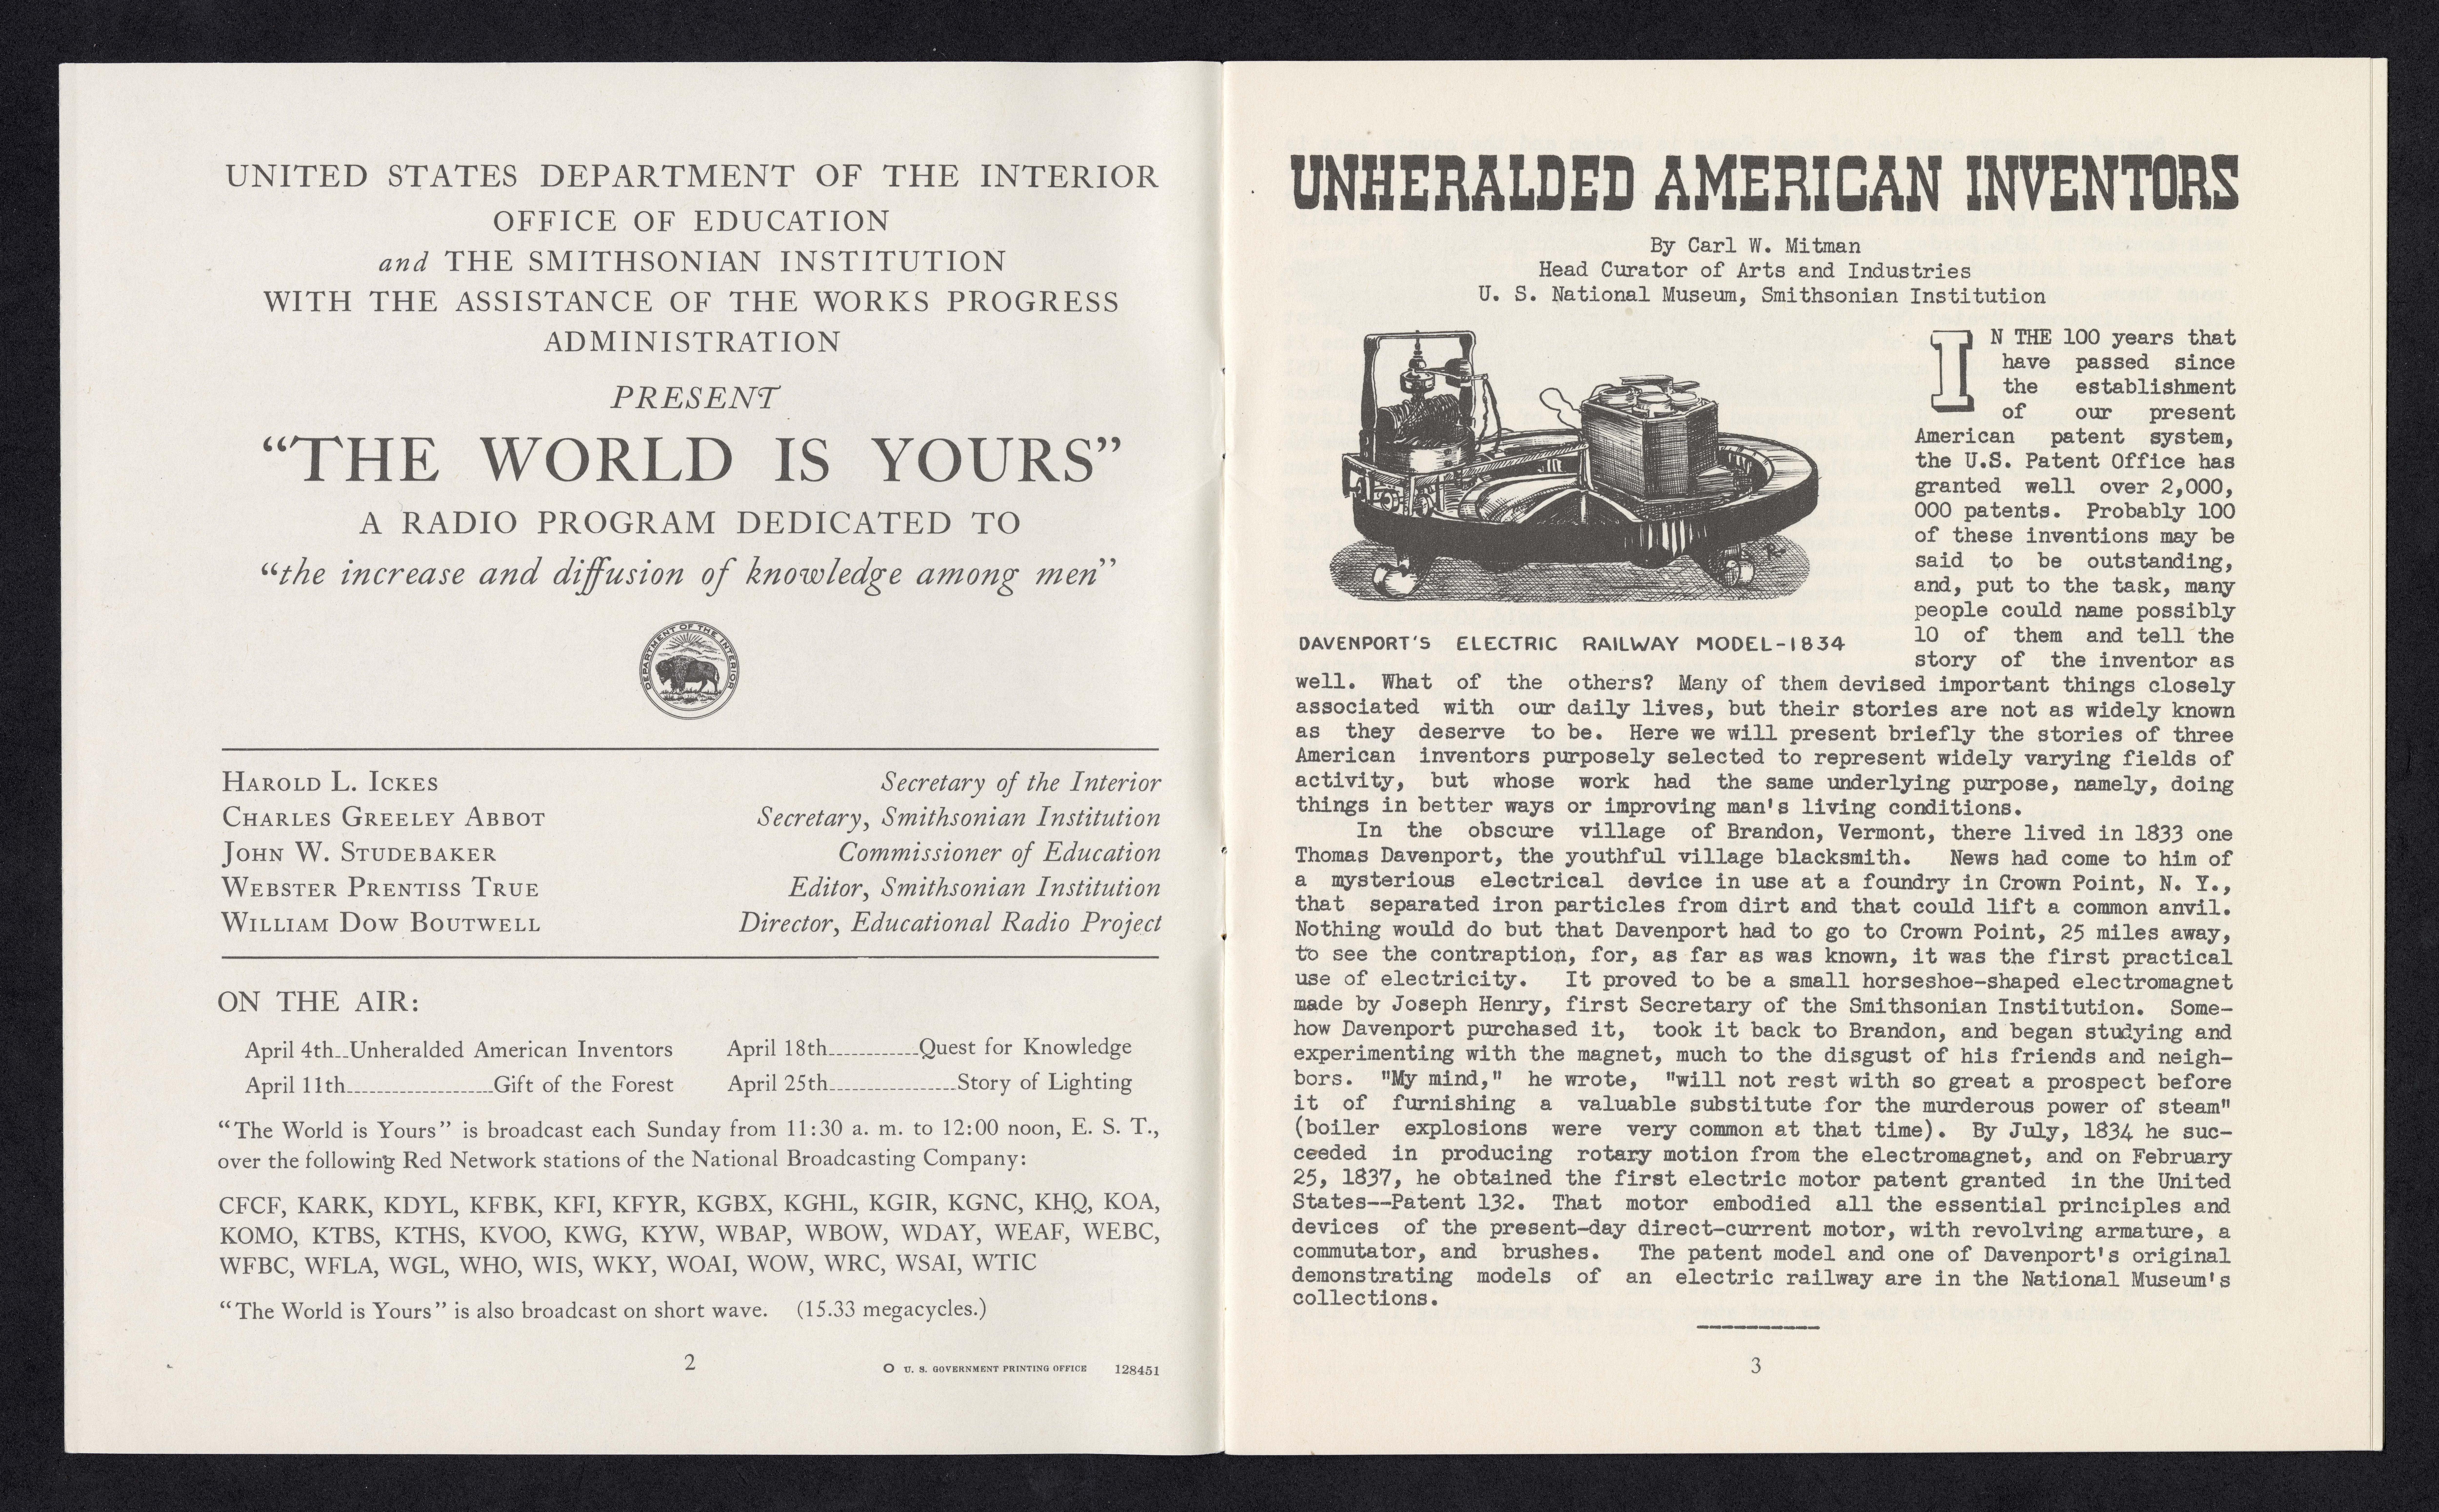 Pages 2-3. The left page has information about the contributors, mainly the Department of the Interi